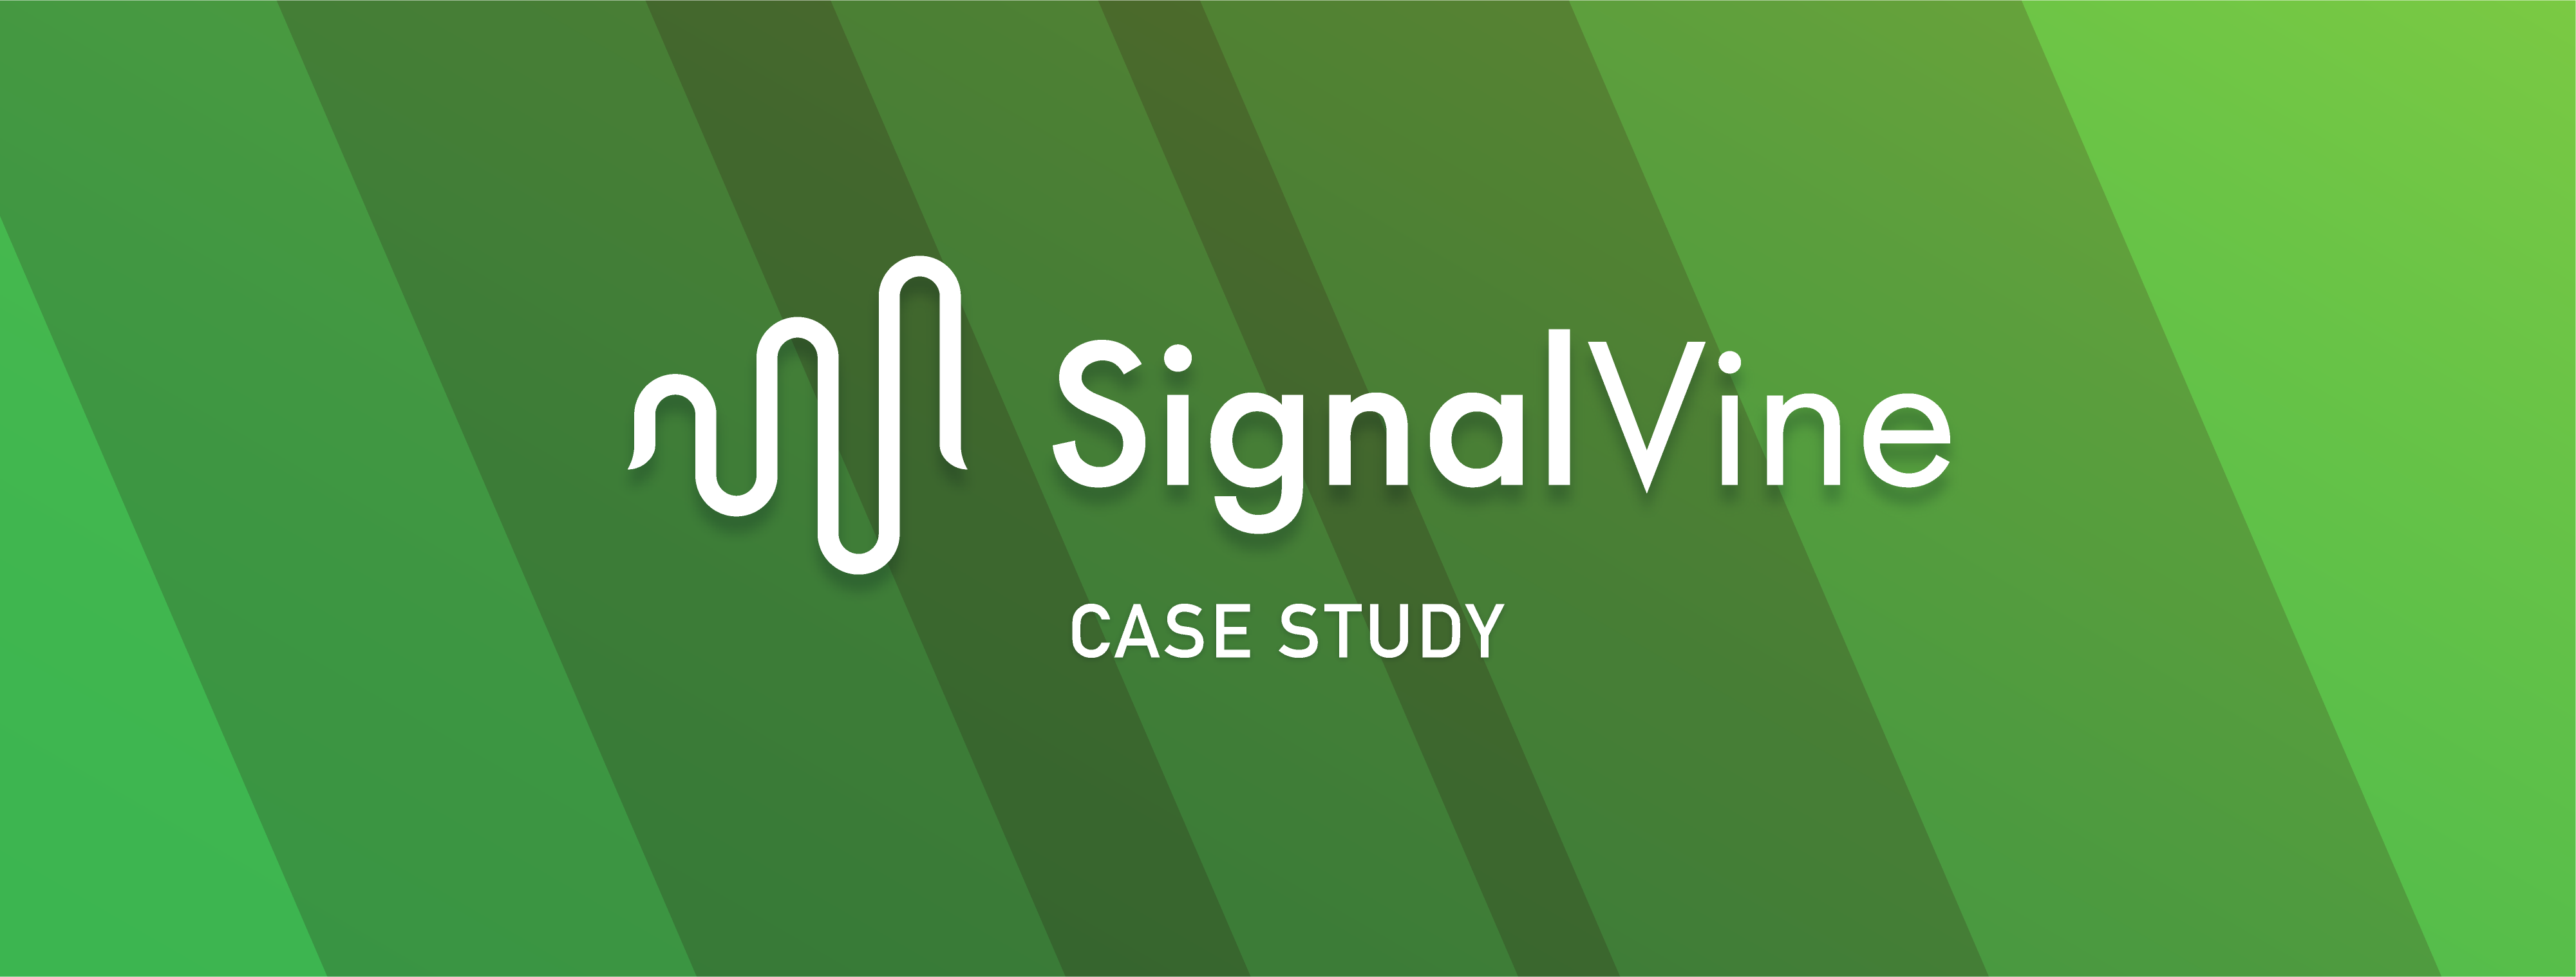 SignalVine Gets Top Grades in Reserved Instance Optimization